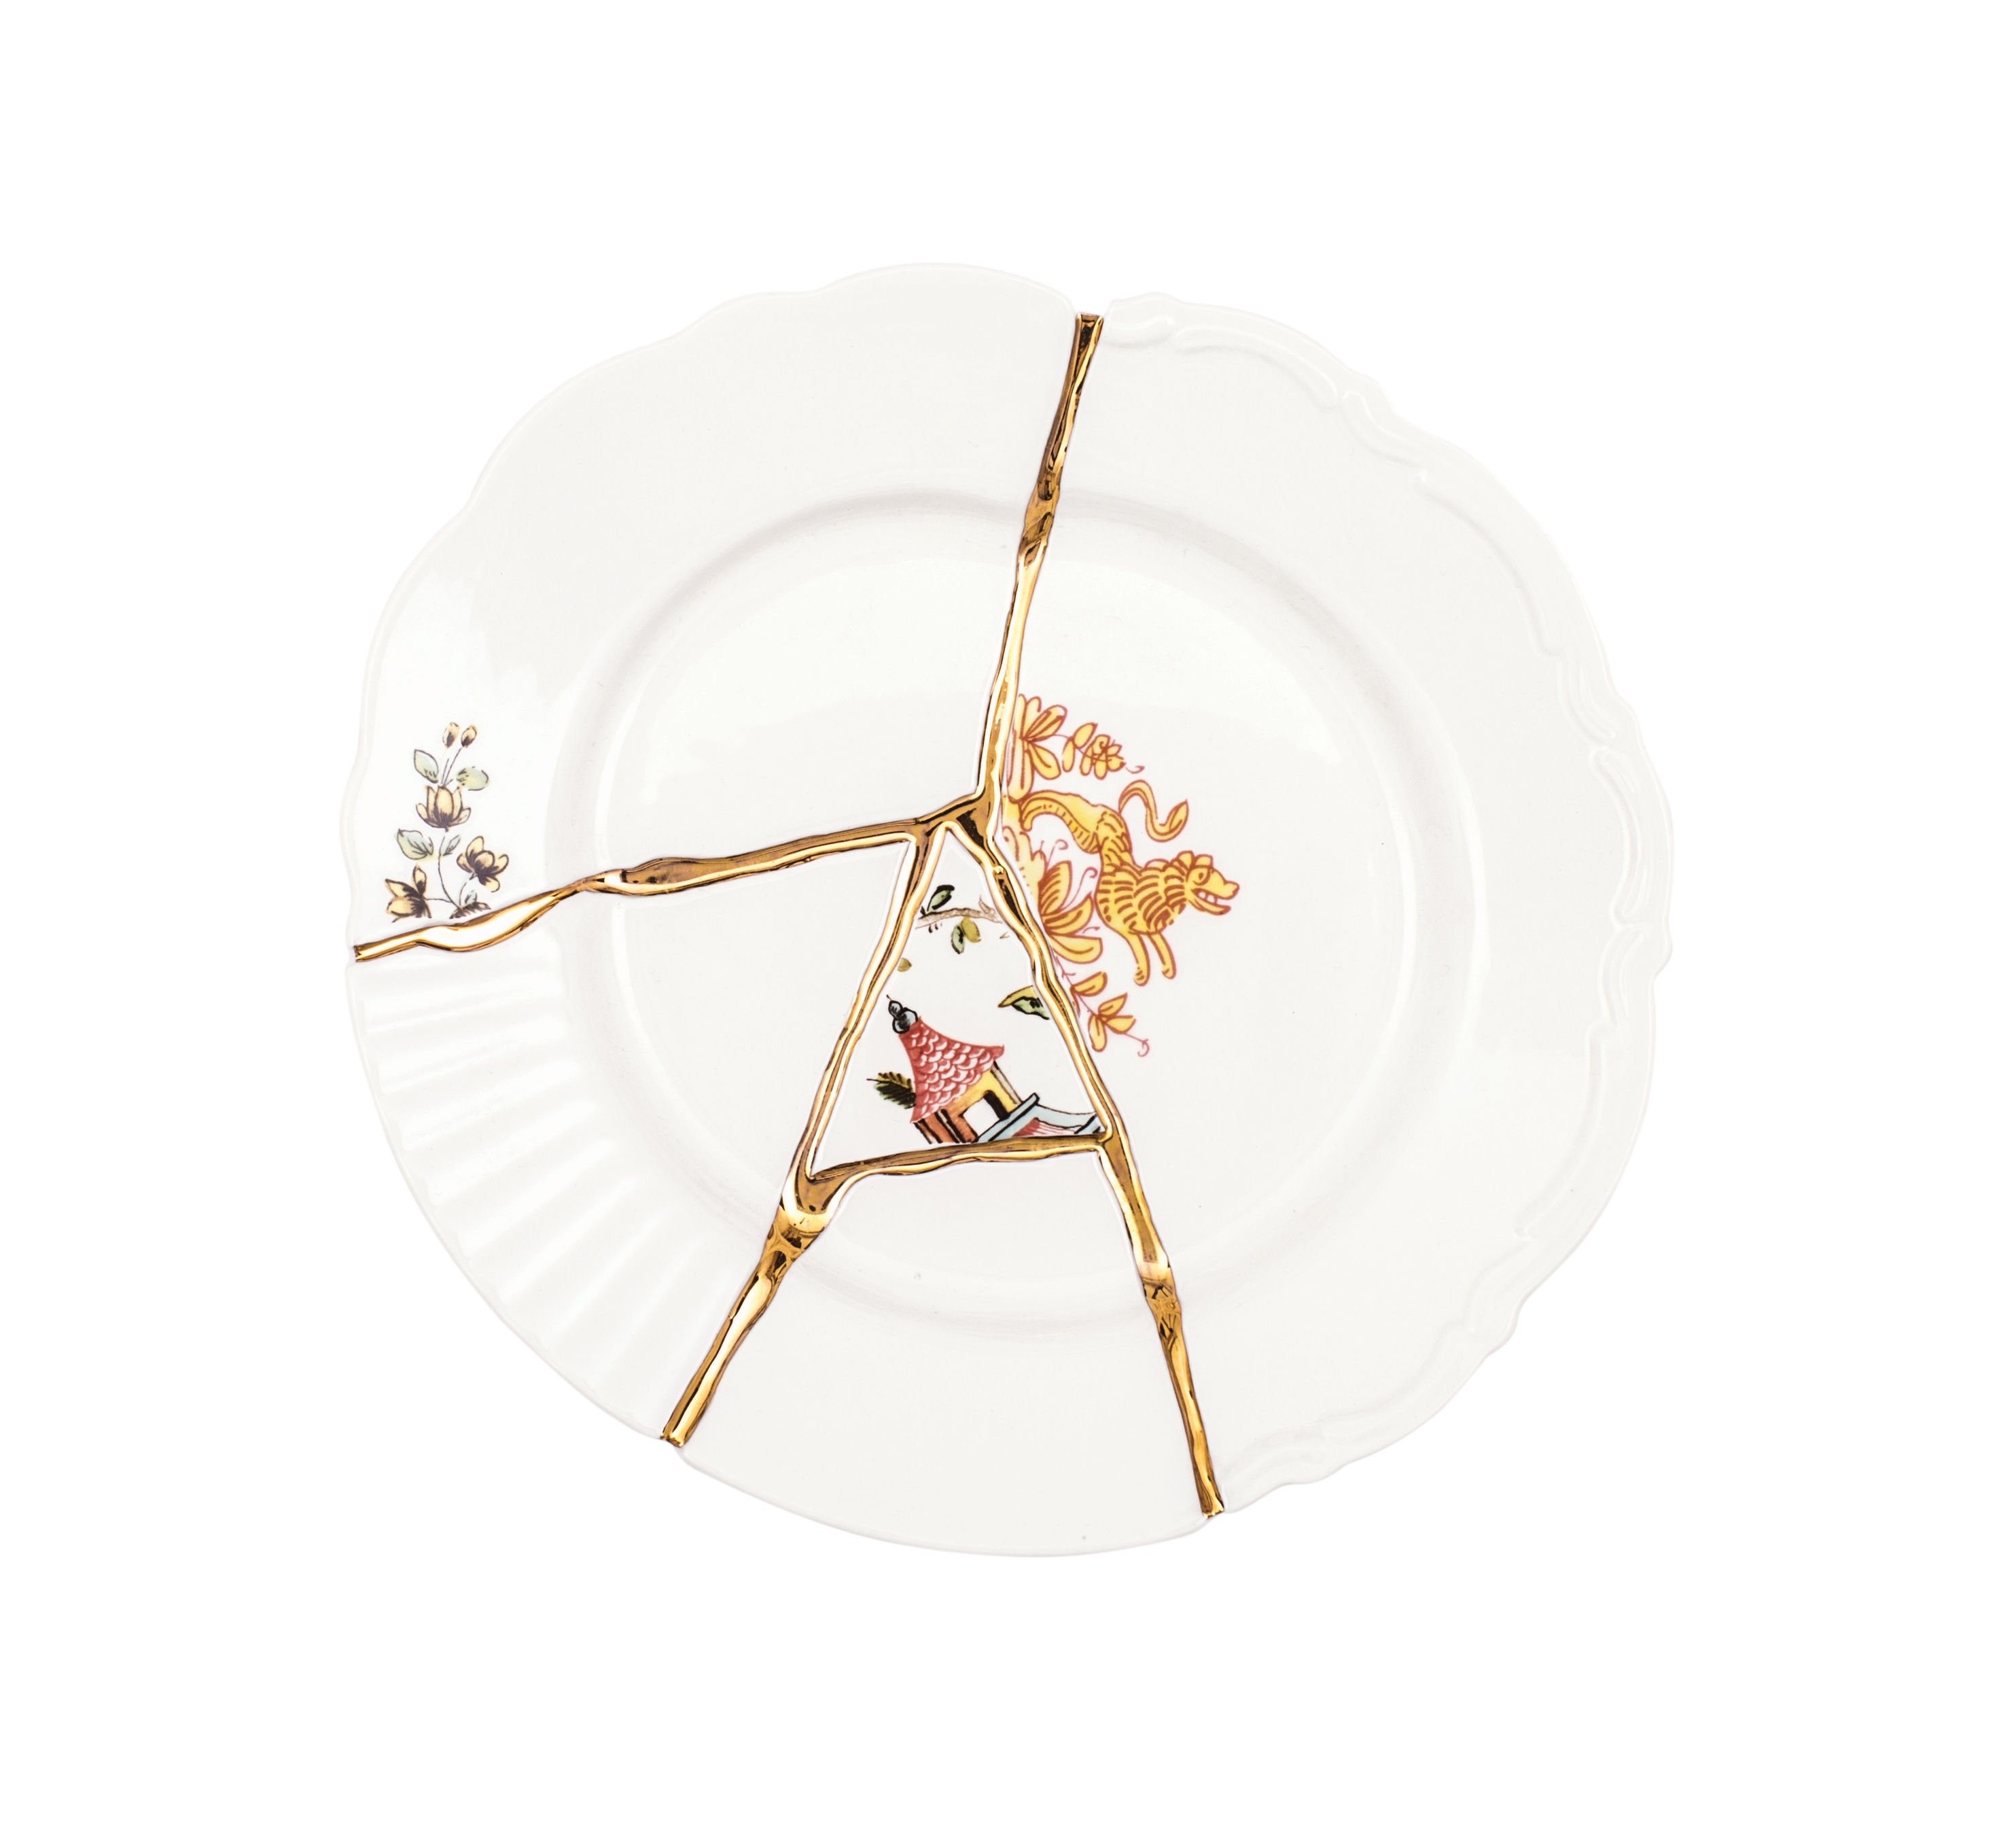 Tableware - Plates - Kintsugi Dessert plate - / Porcelaine & or fin by Seletti - Blanc & or / Motifs multicolores - China, Gold